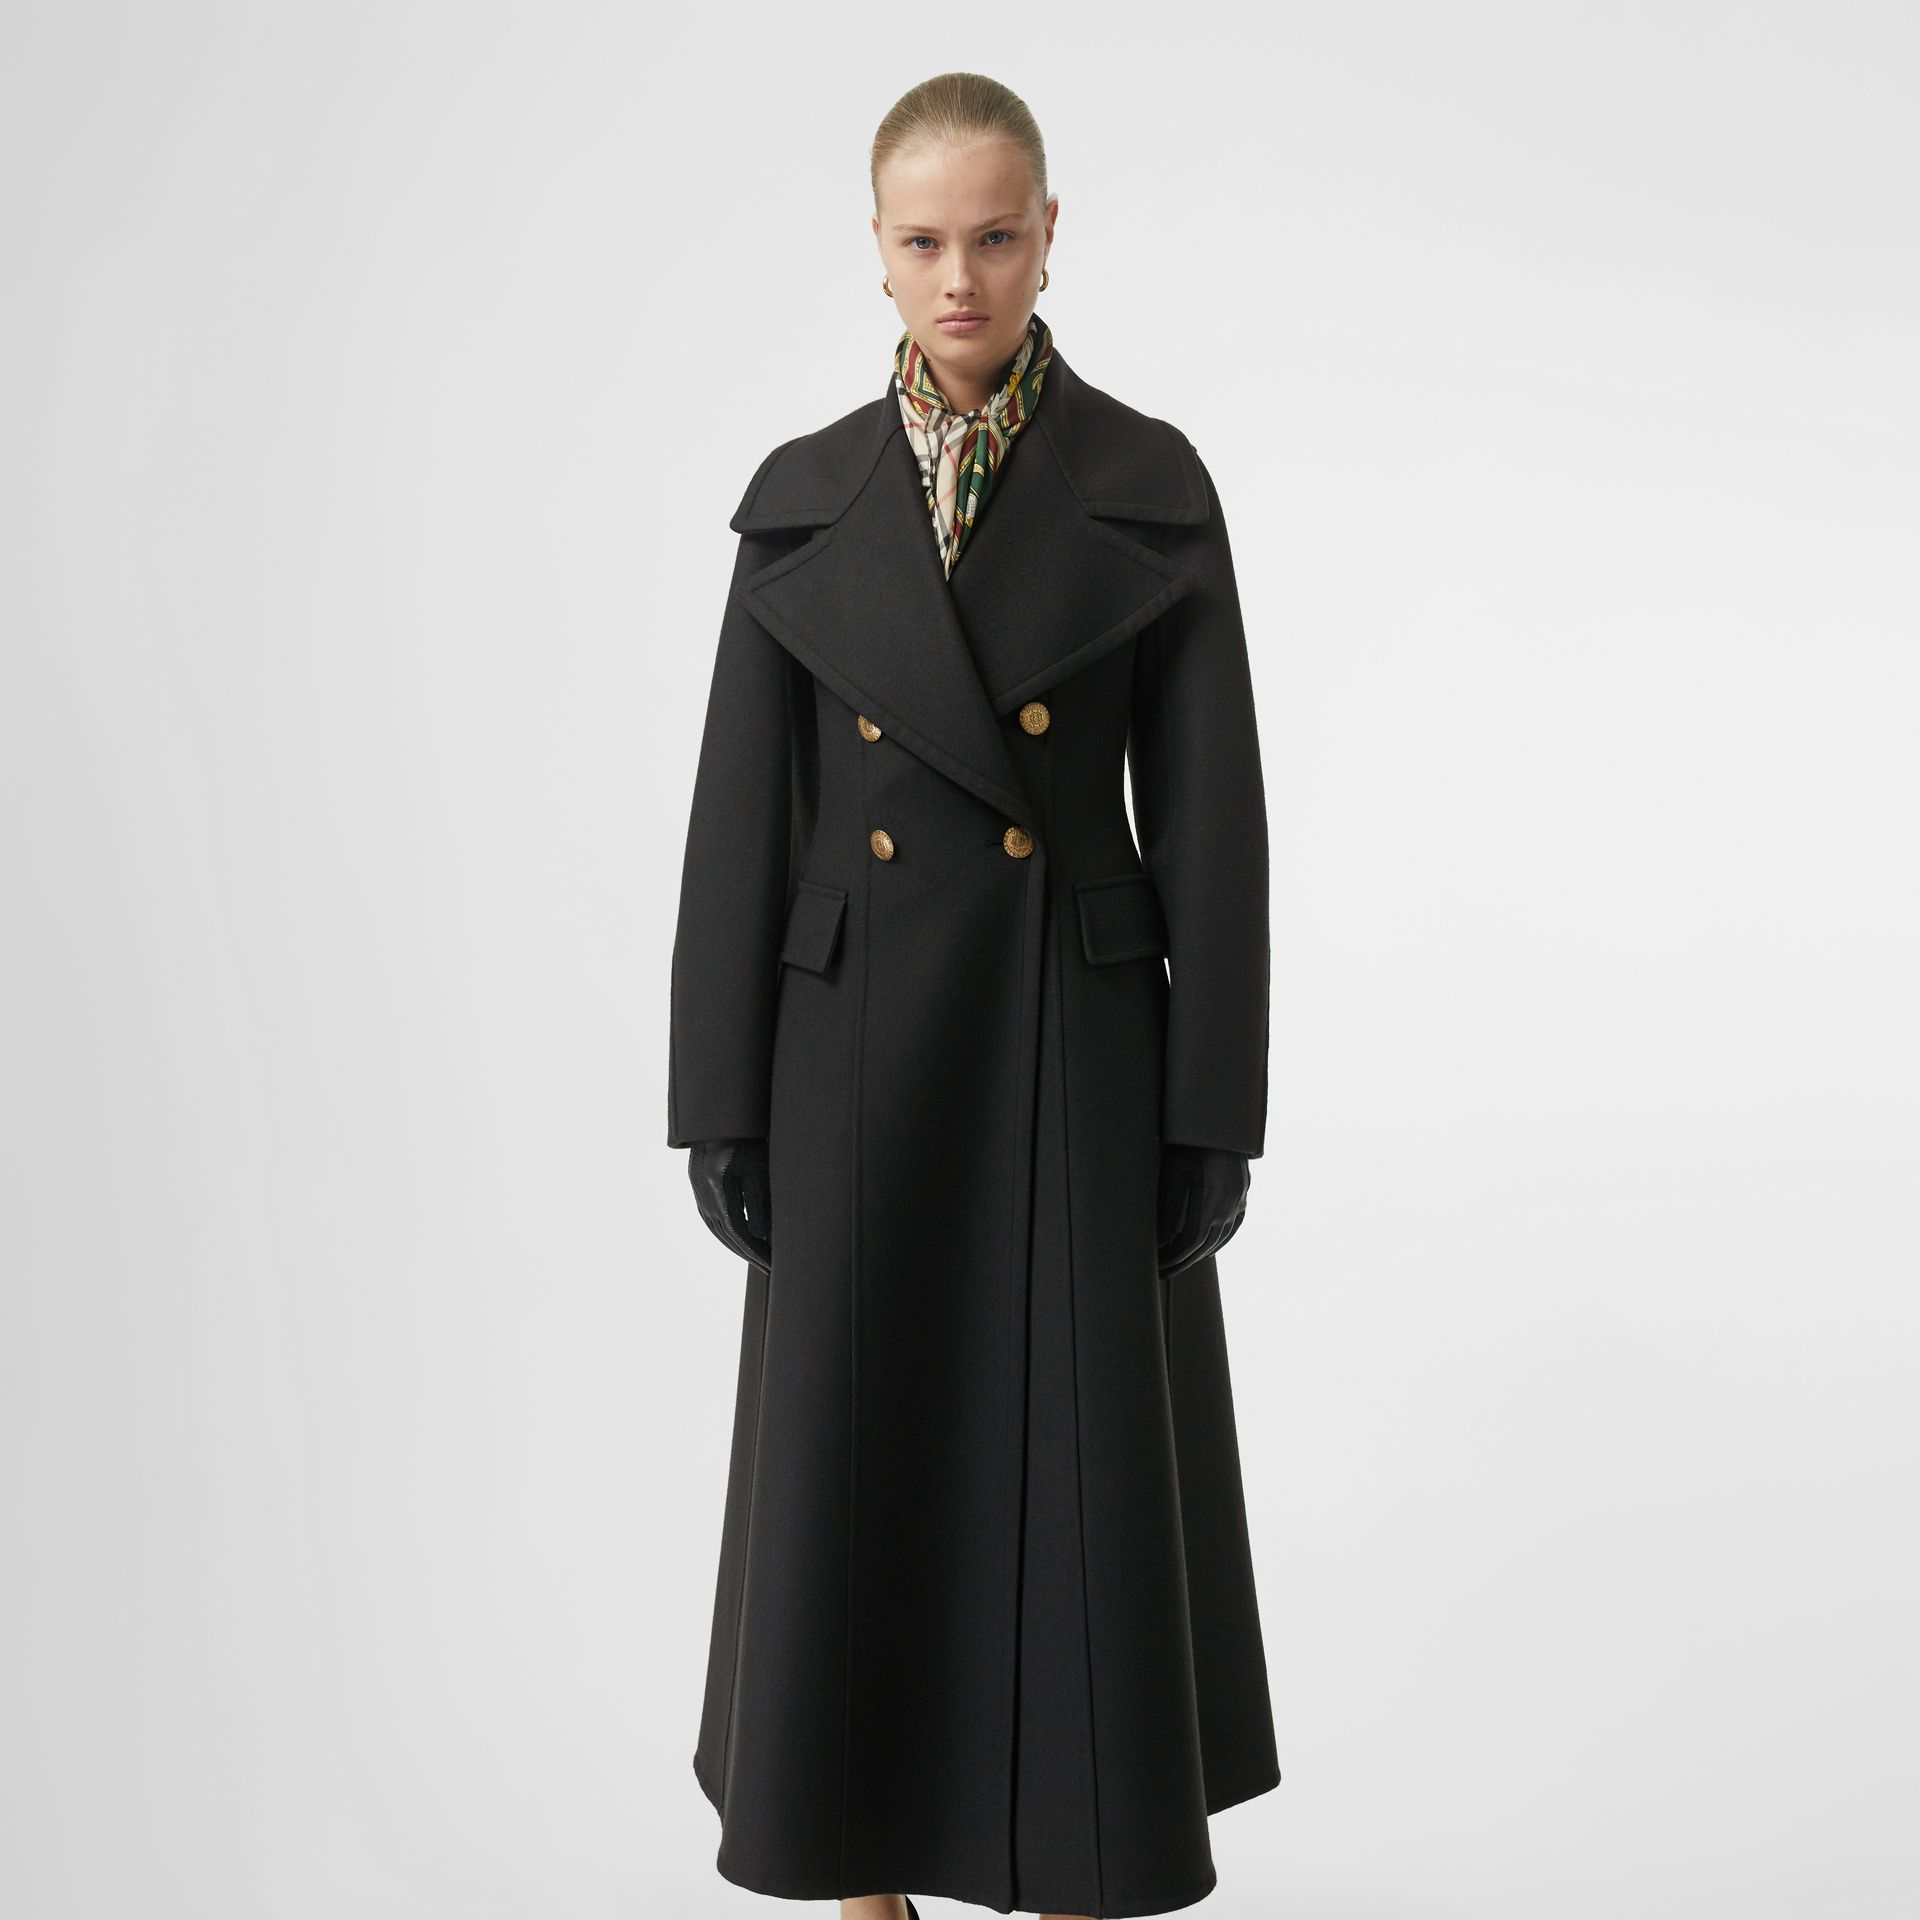 Doeskin Wool Tailored Coat in Dark Forest Green - Women | Burberry - gallery image 5